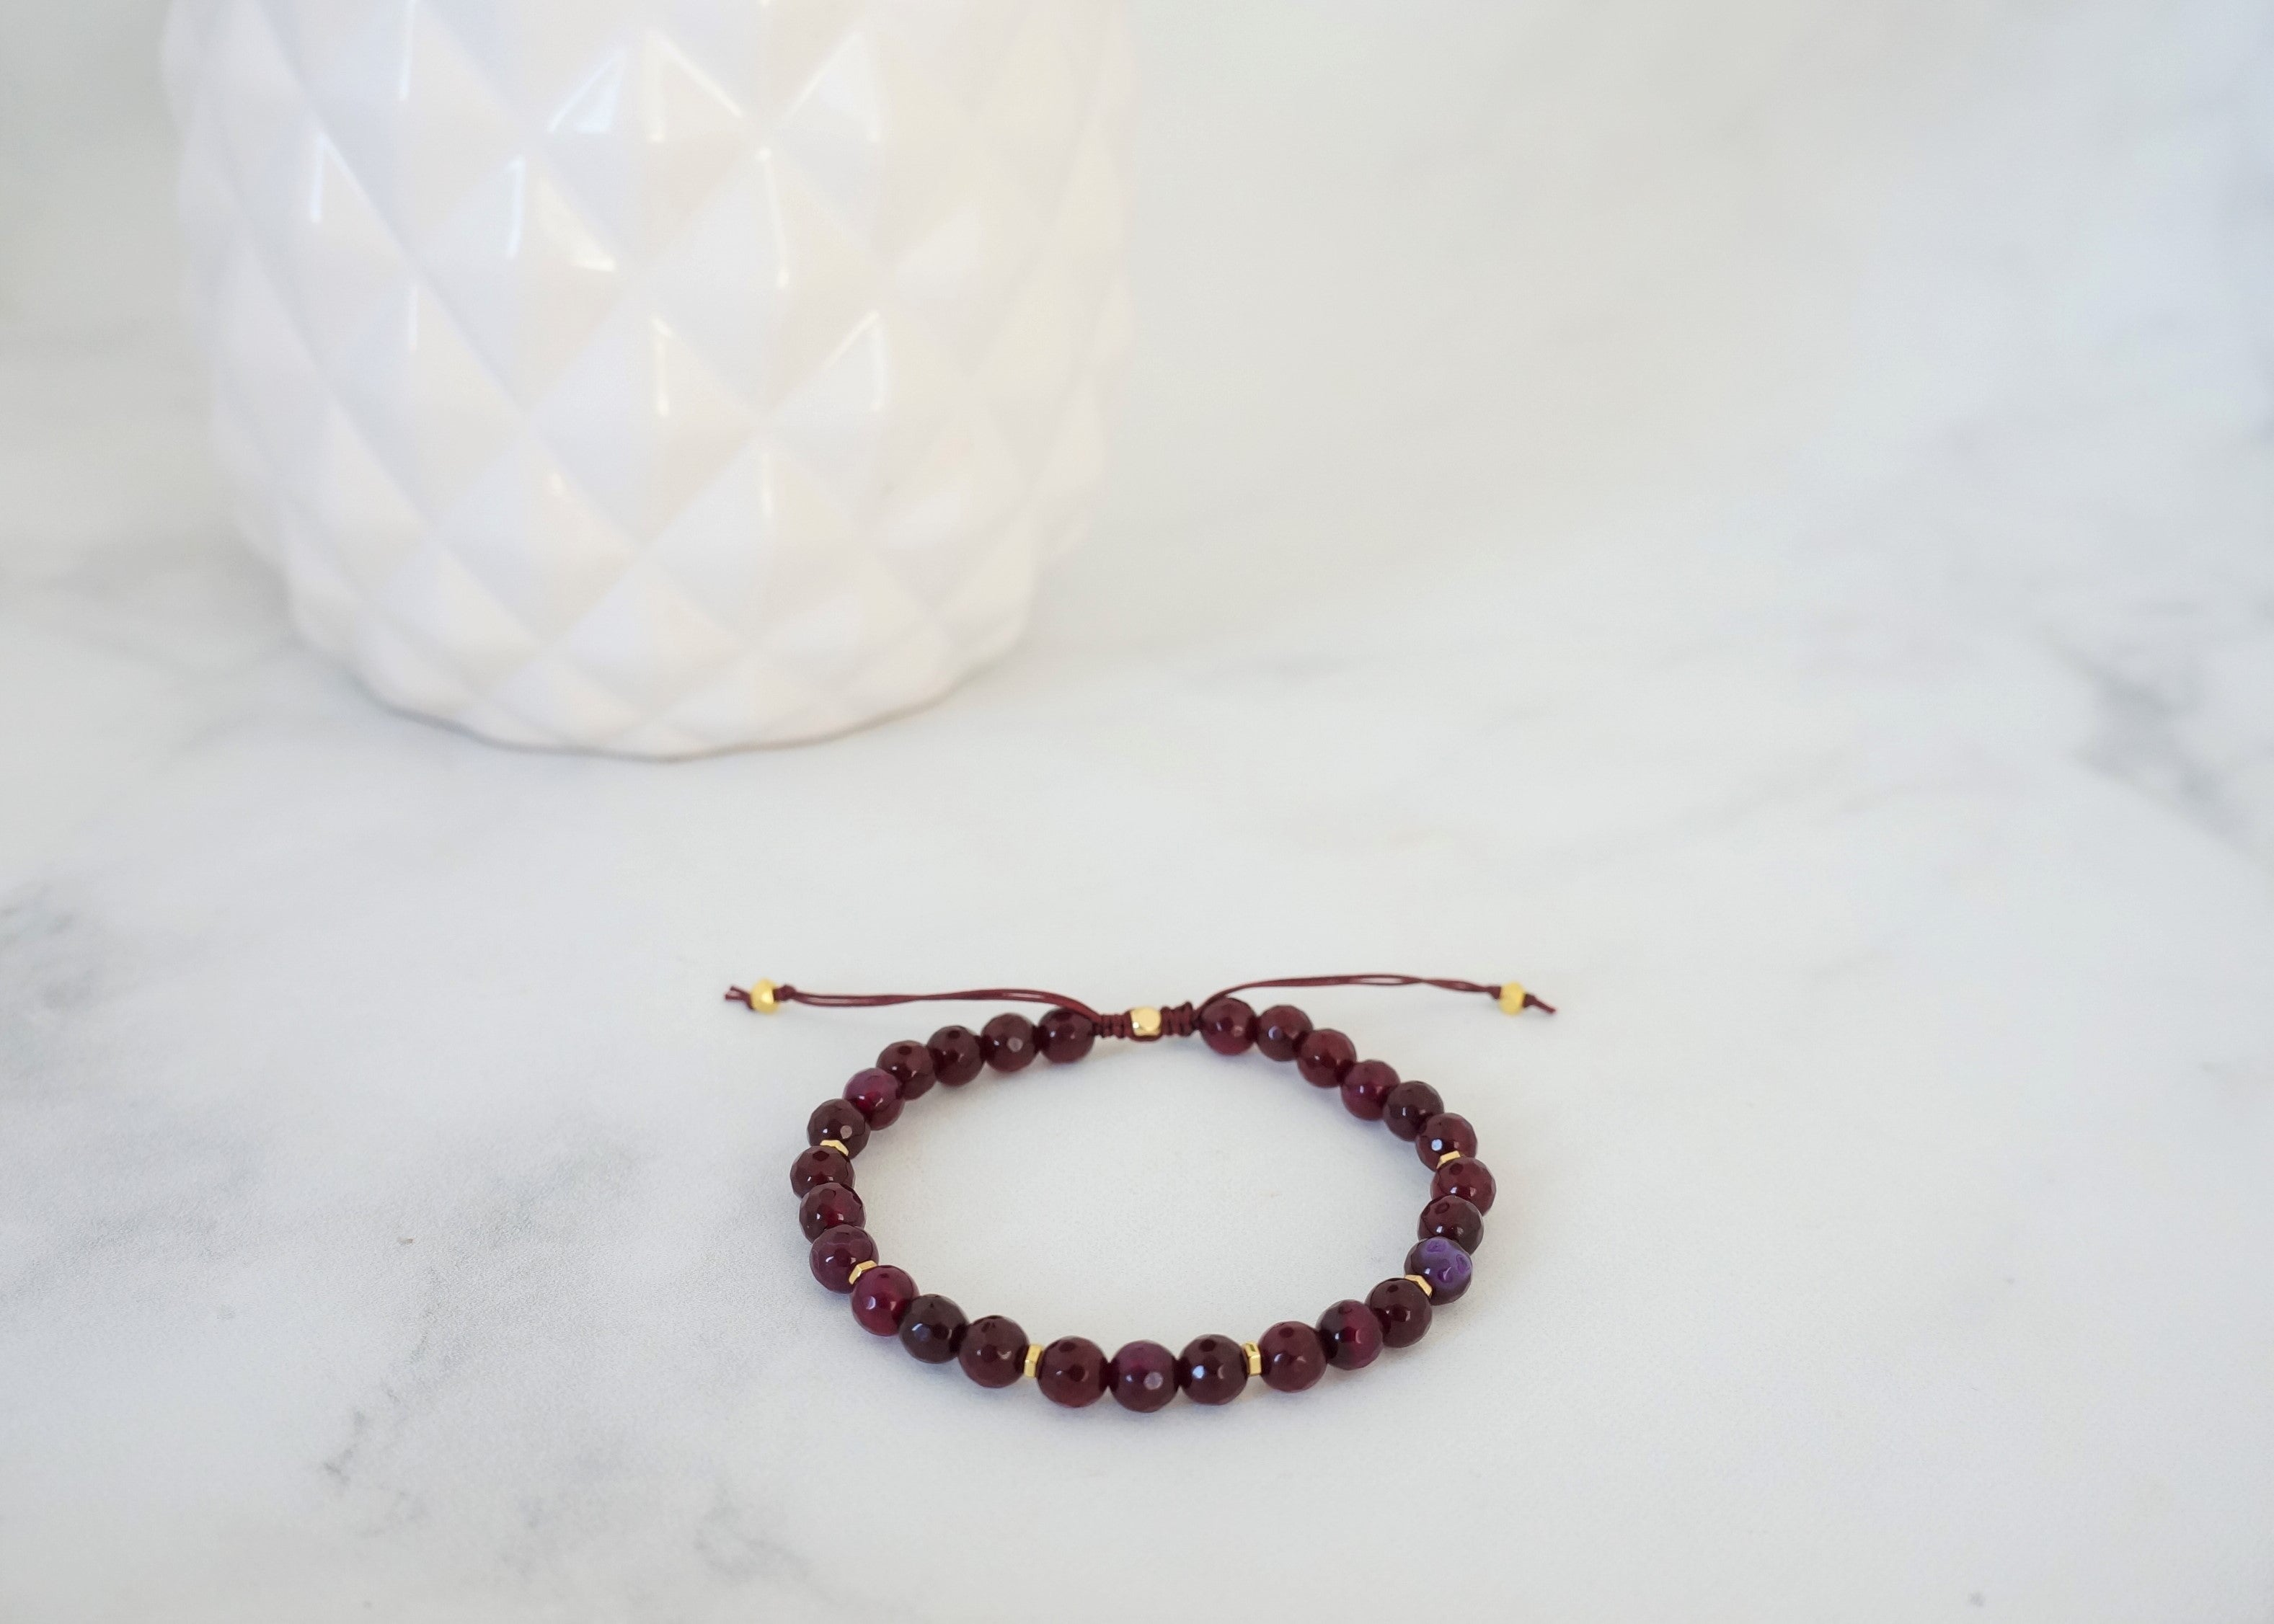 Passion Bracelet - Carolyn Hearn Designs